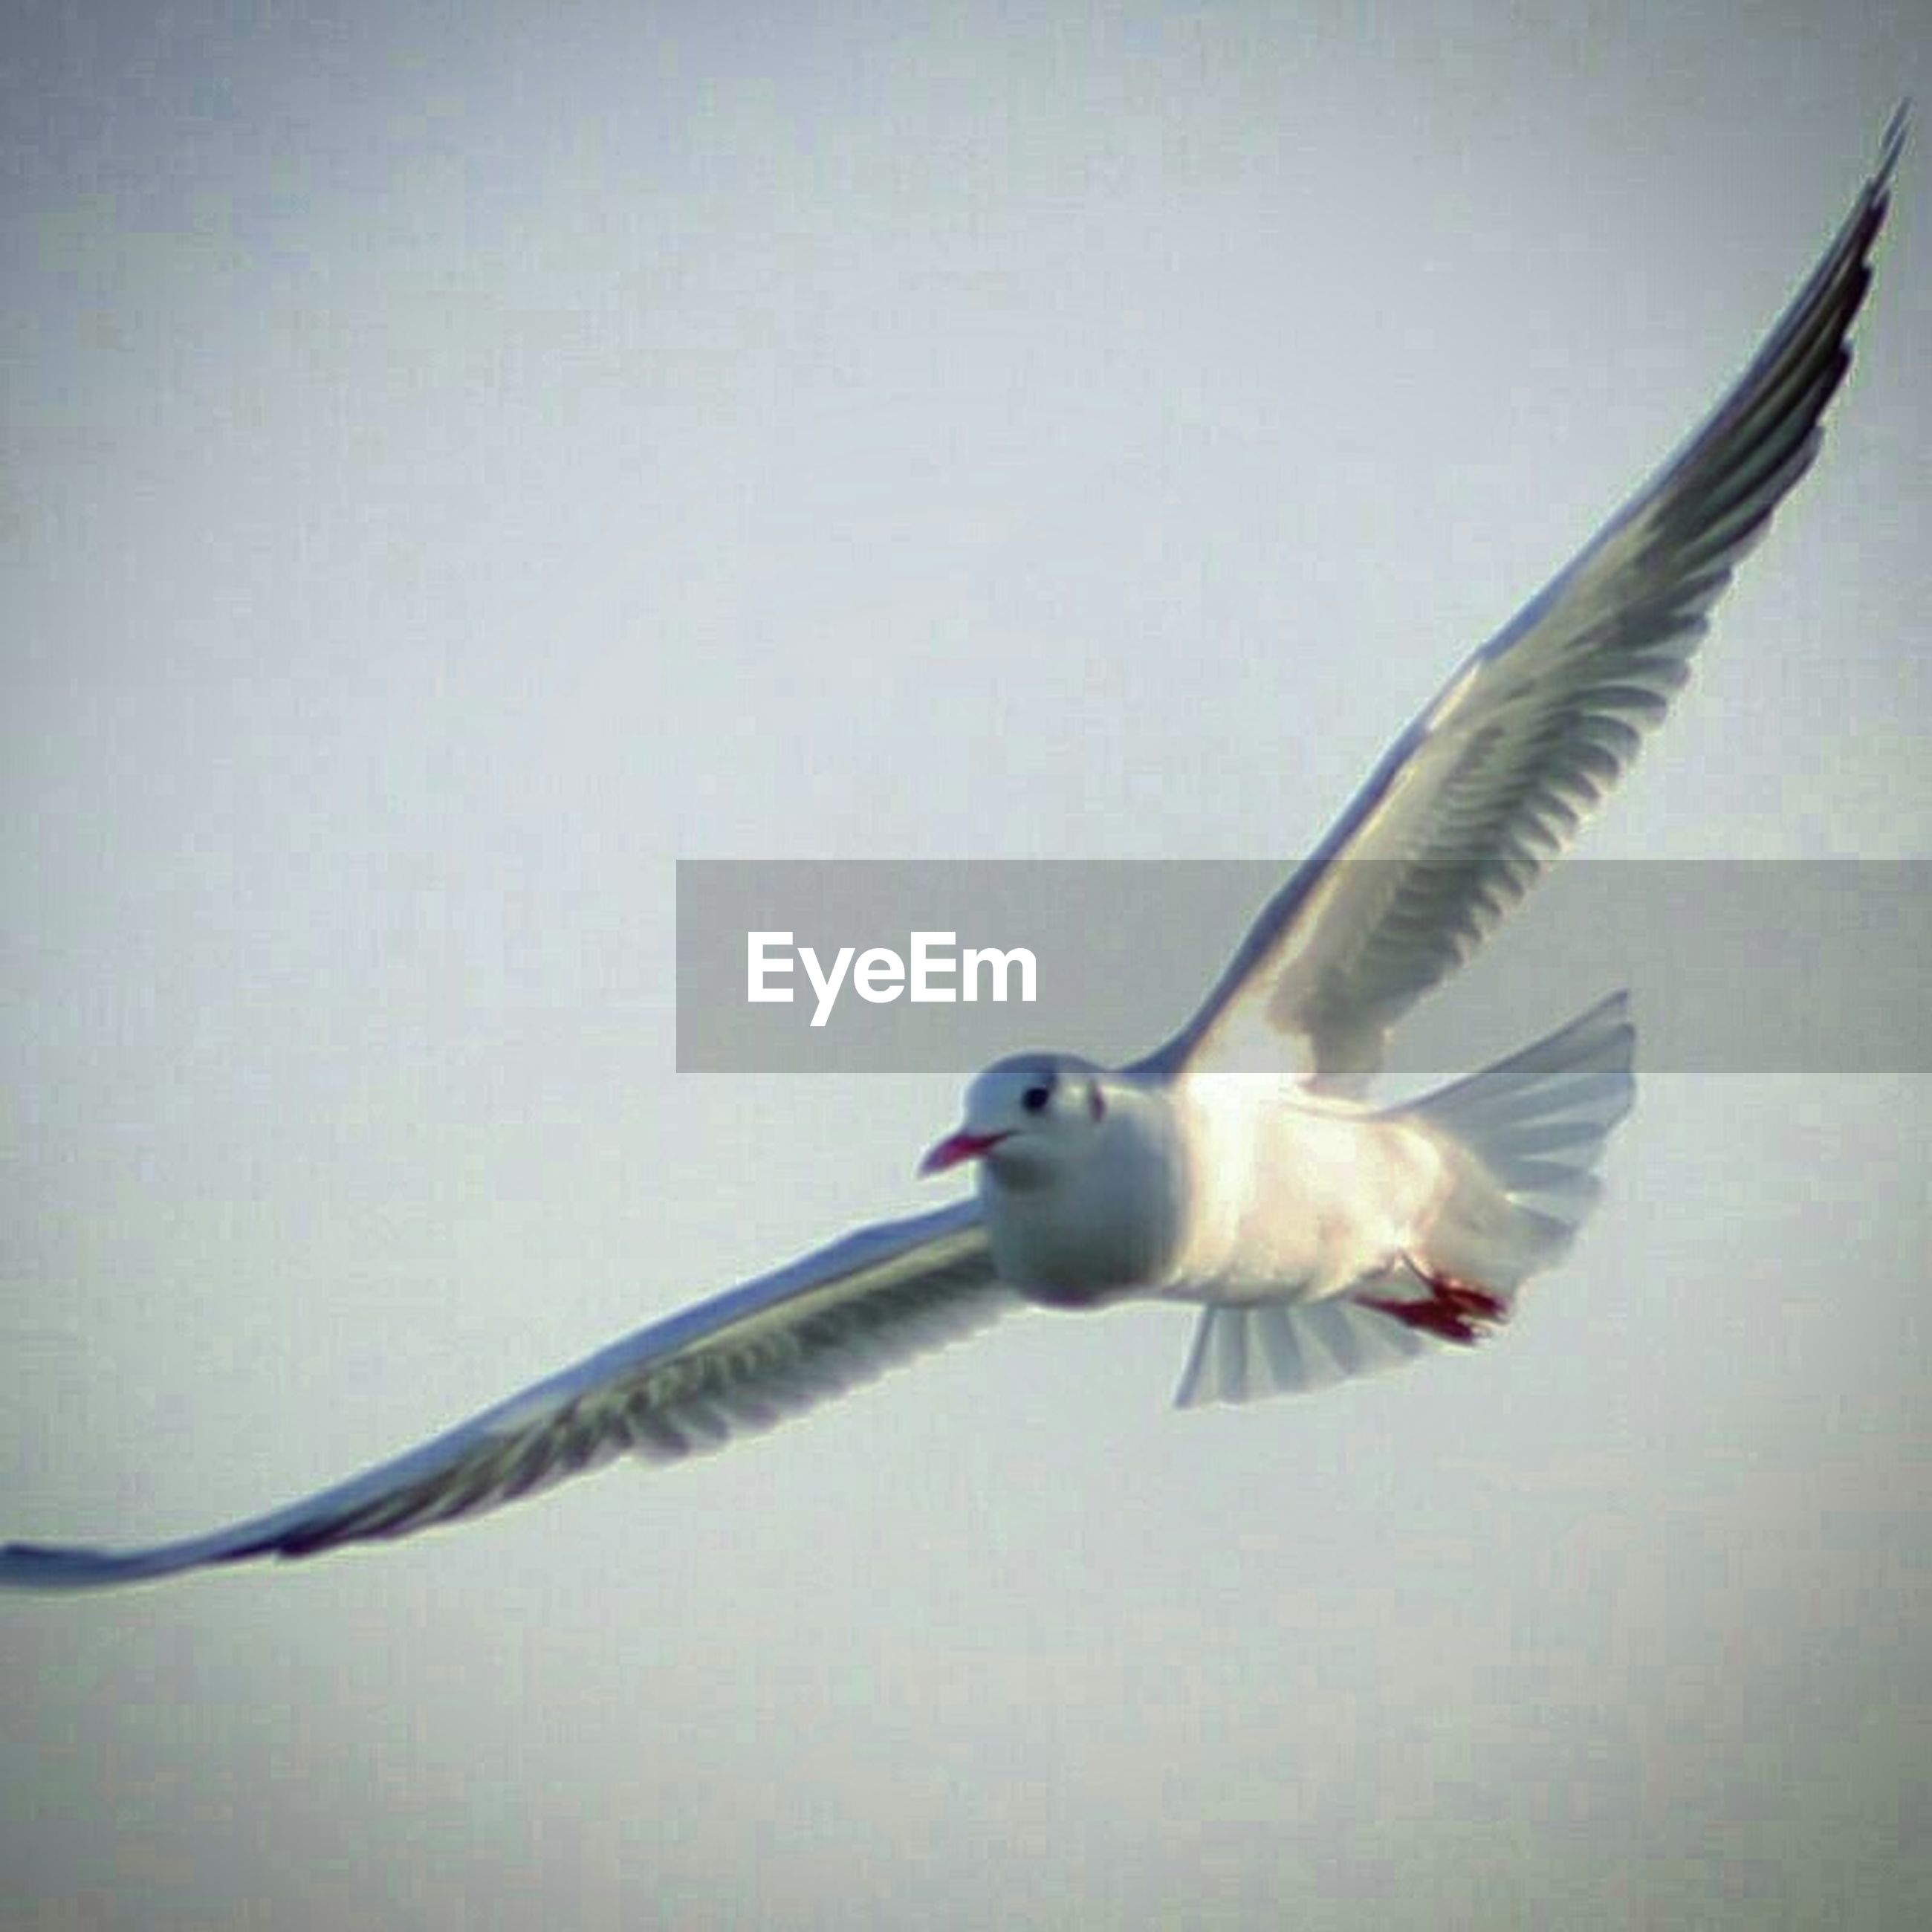 bird, animal themes, animals in the wild, flying, one animal, wildlife, spread wings, mid-air, seagull, full length, clear sky, copy space, motion, perching, zoology, side view, nature, beak, animal wing, day